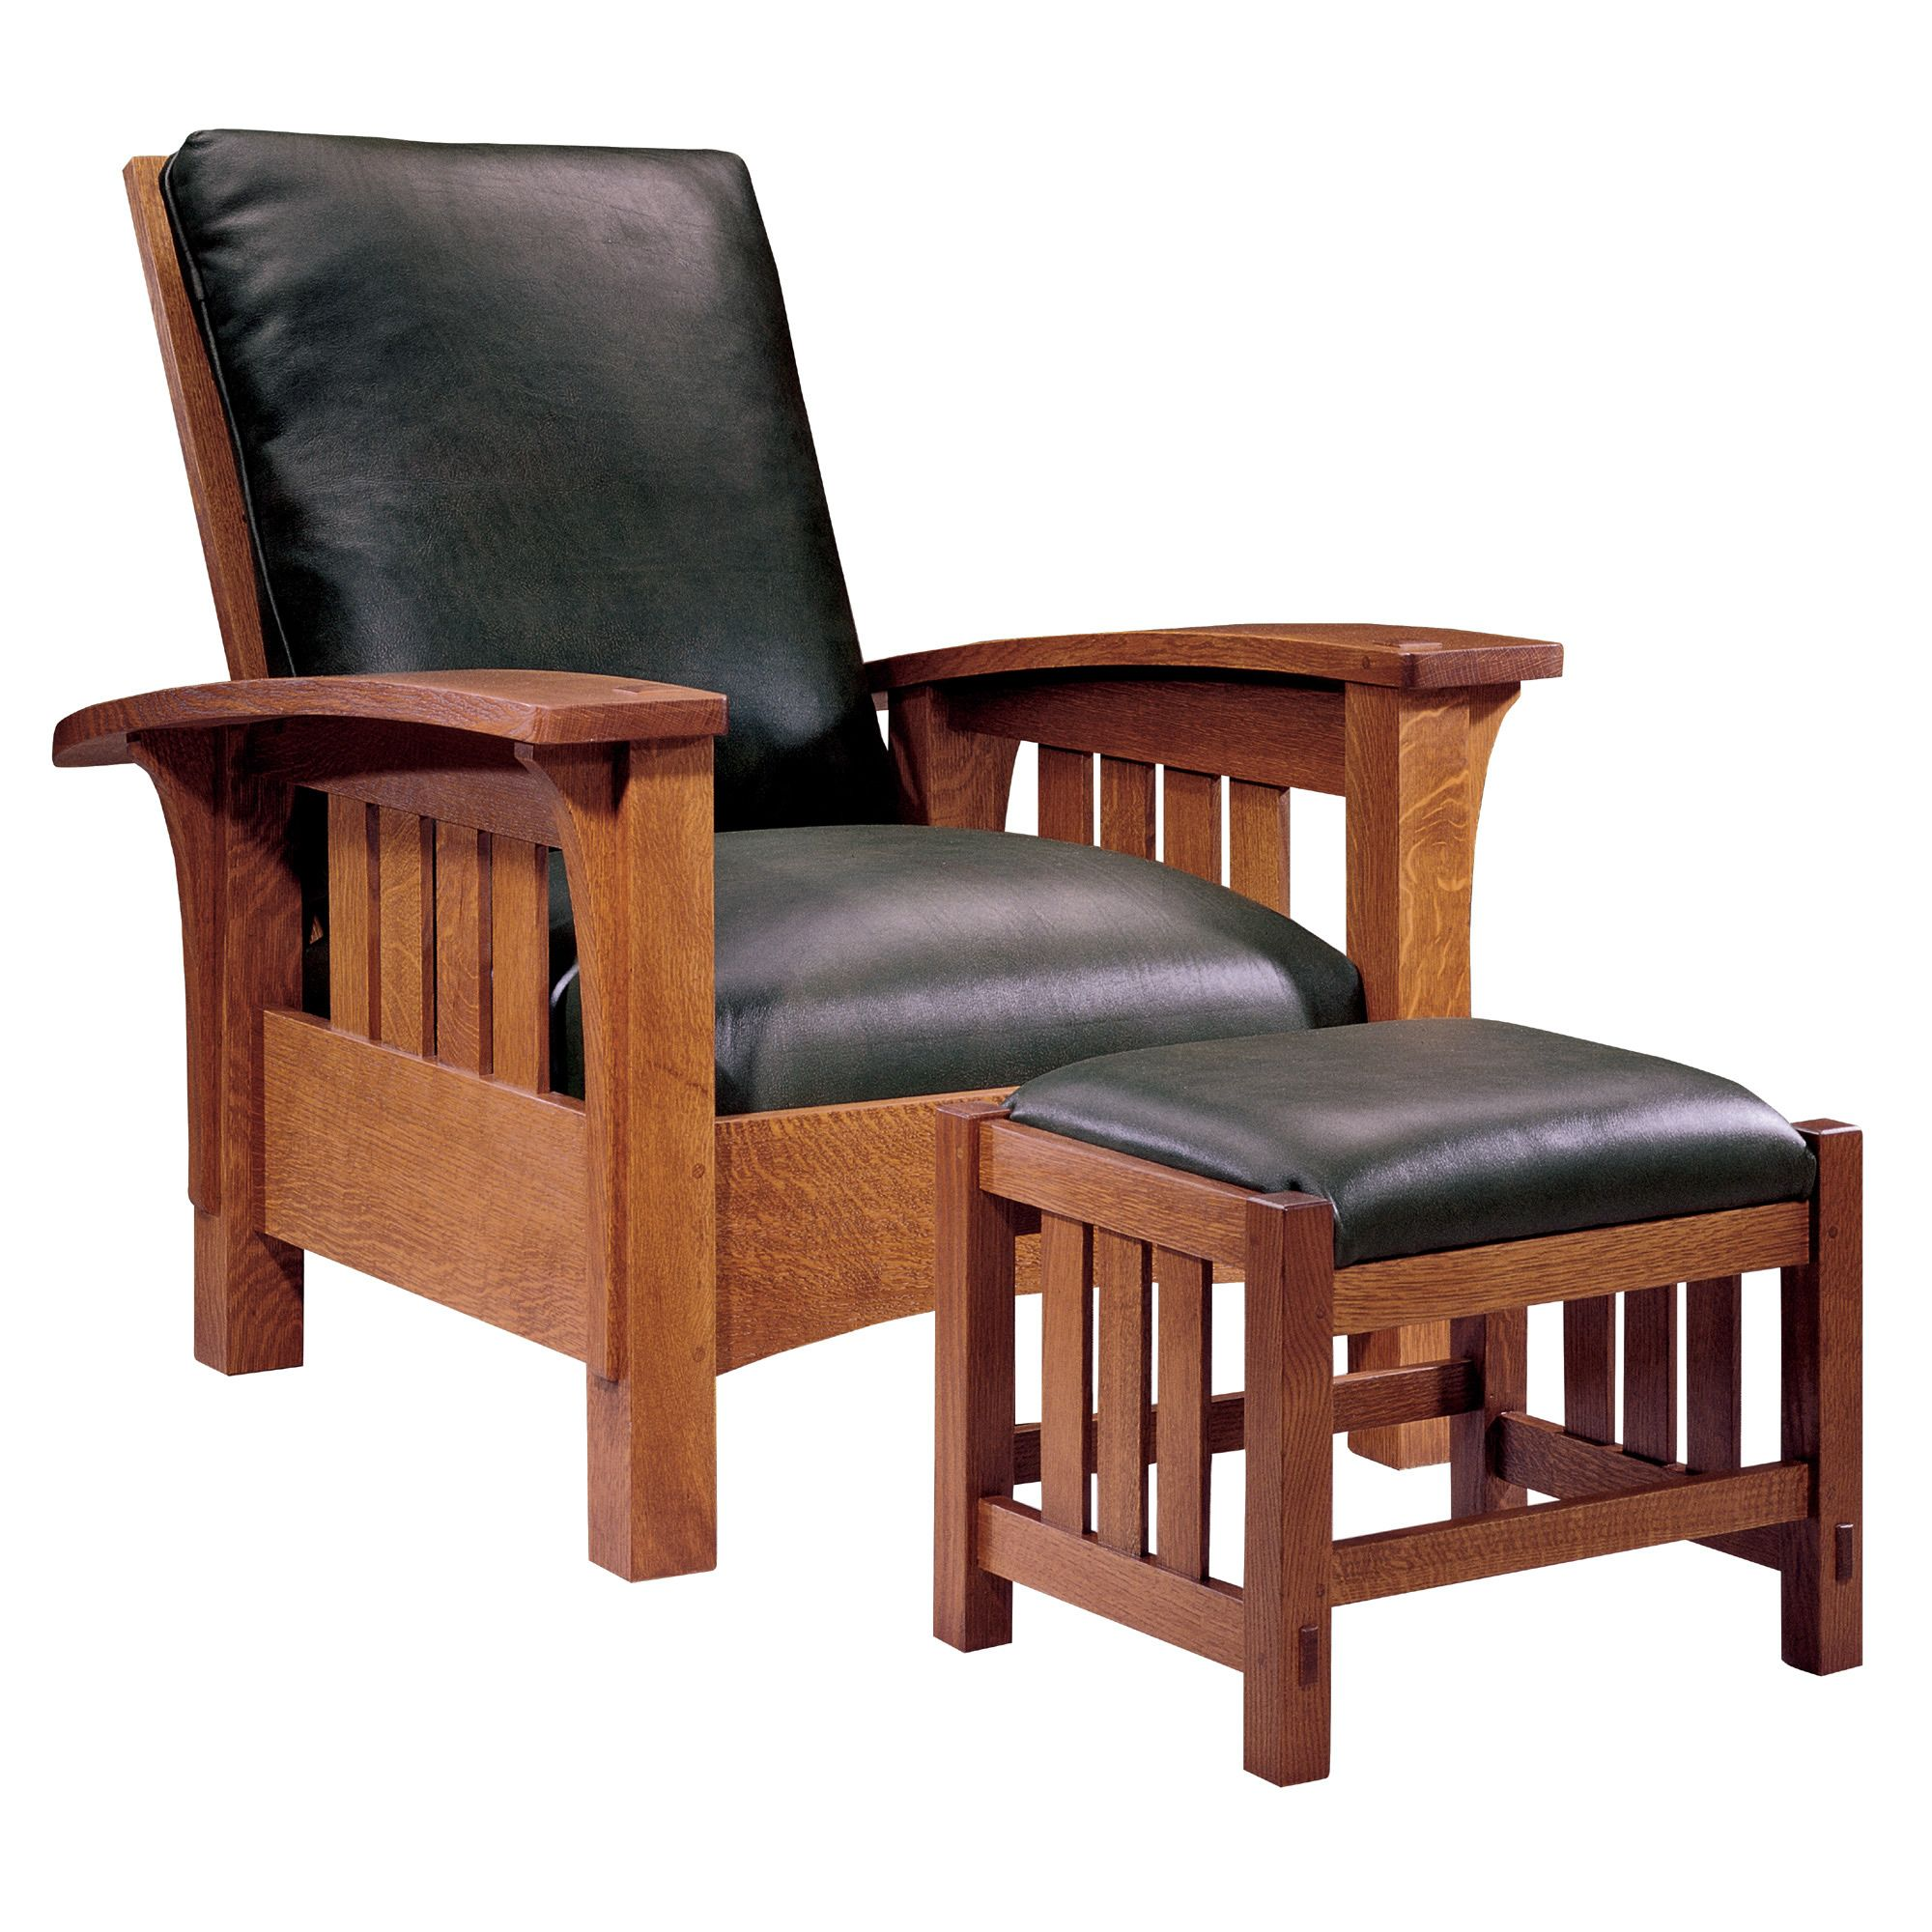 I do not ever get tired of Stickley. So classic, so comfortable